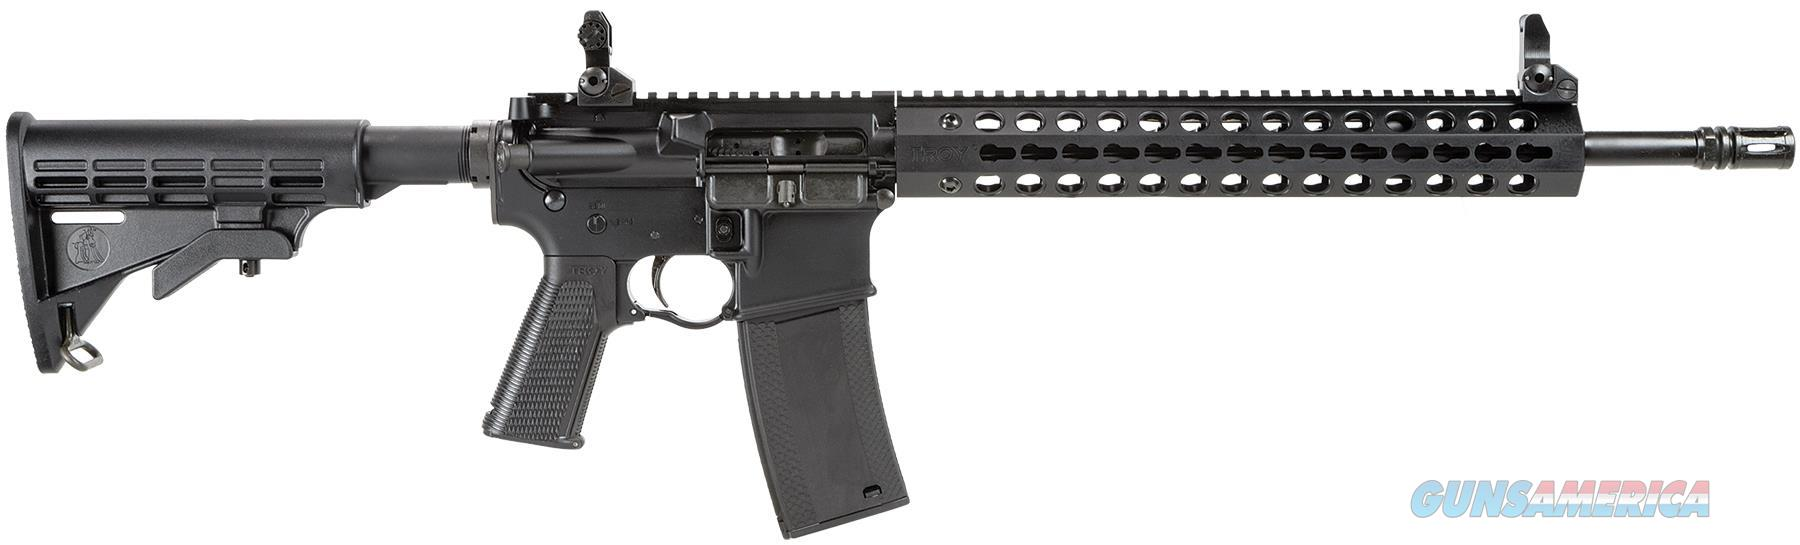 "TROY INDUSTRIES INC TROY CAR 16""/556 BLK 1-30RD SCAR-SP3-16BT-00  Guns > Rifles > Troy Defense > Troy Defense Rifles"